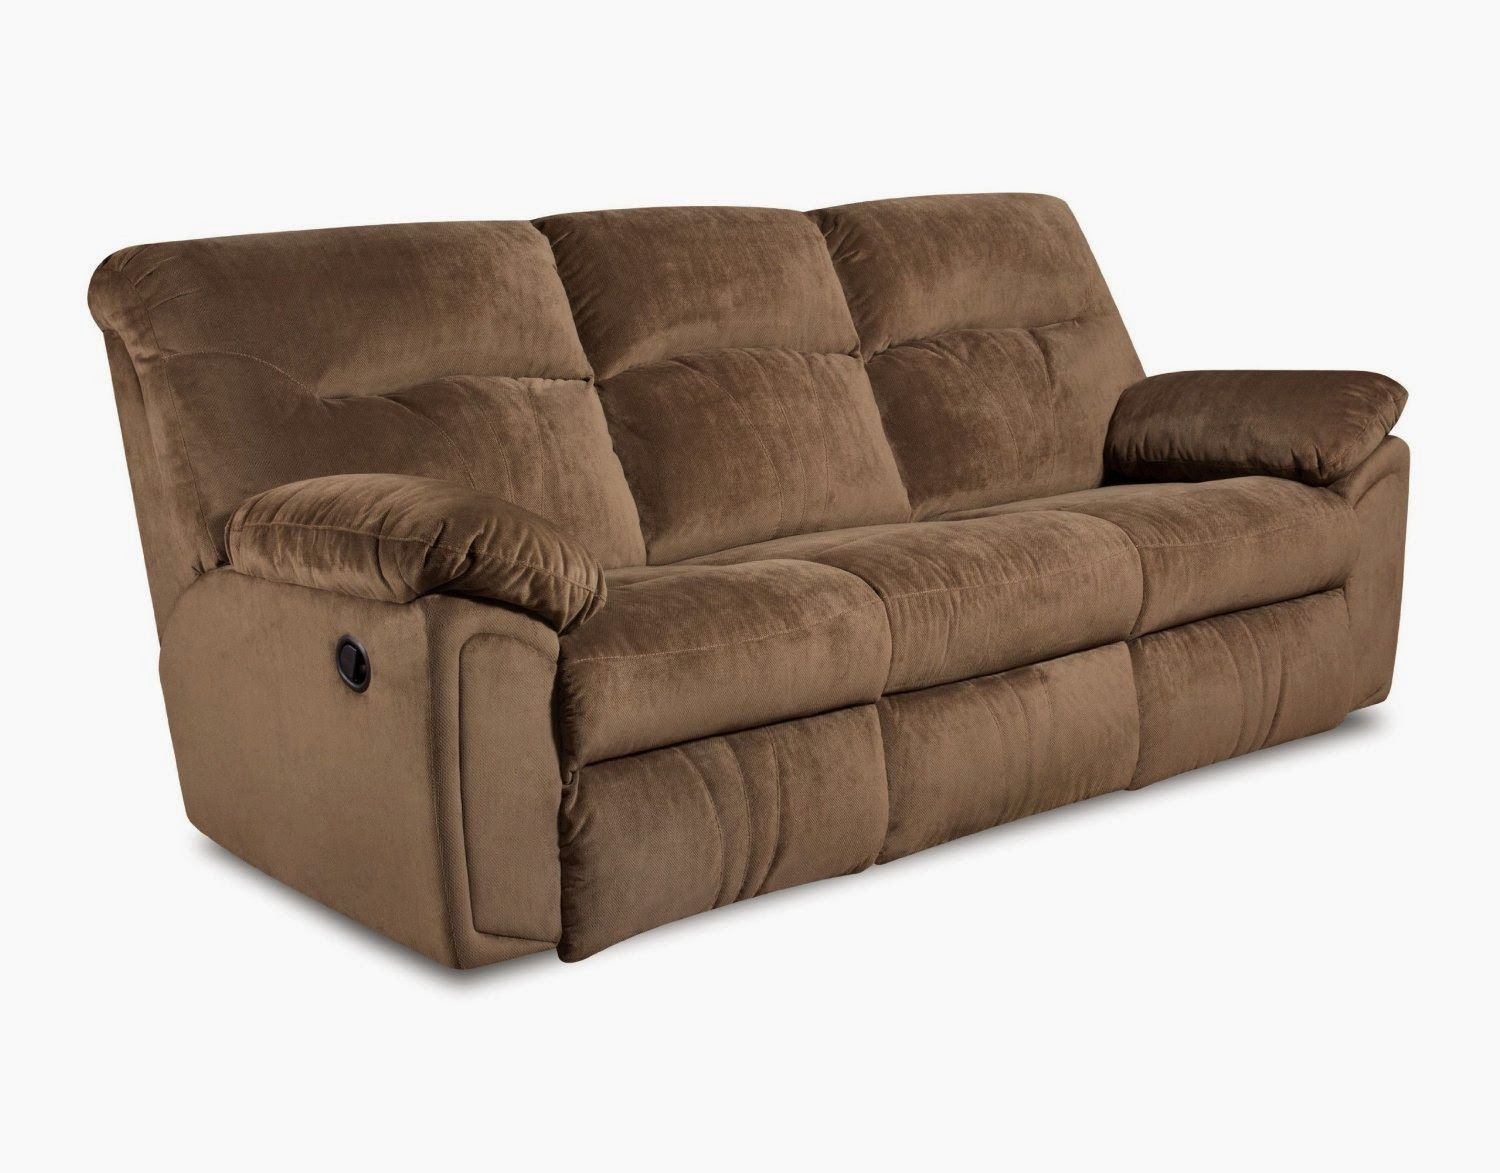 Beautiful Top 10 Best Reclining Sofa Sets (Ultimate Buying Guide)